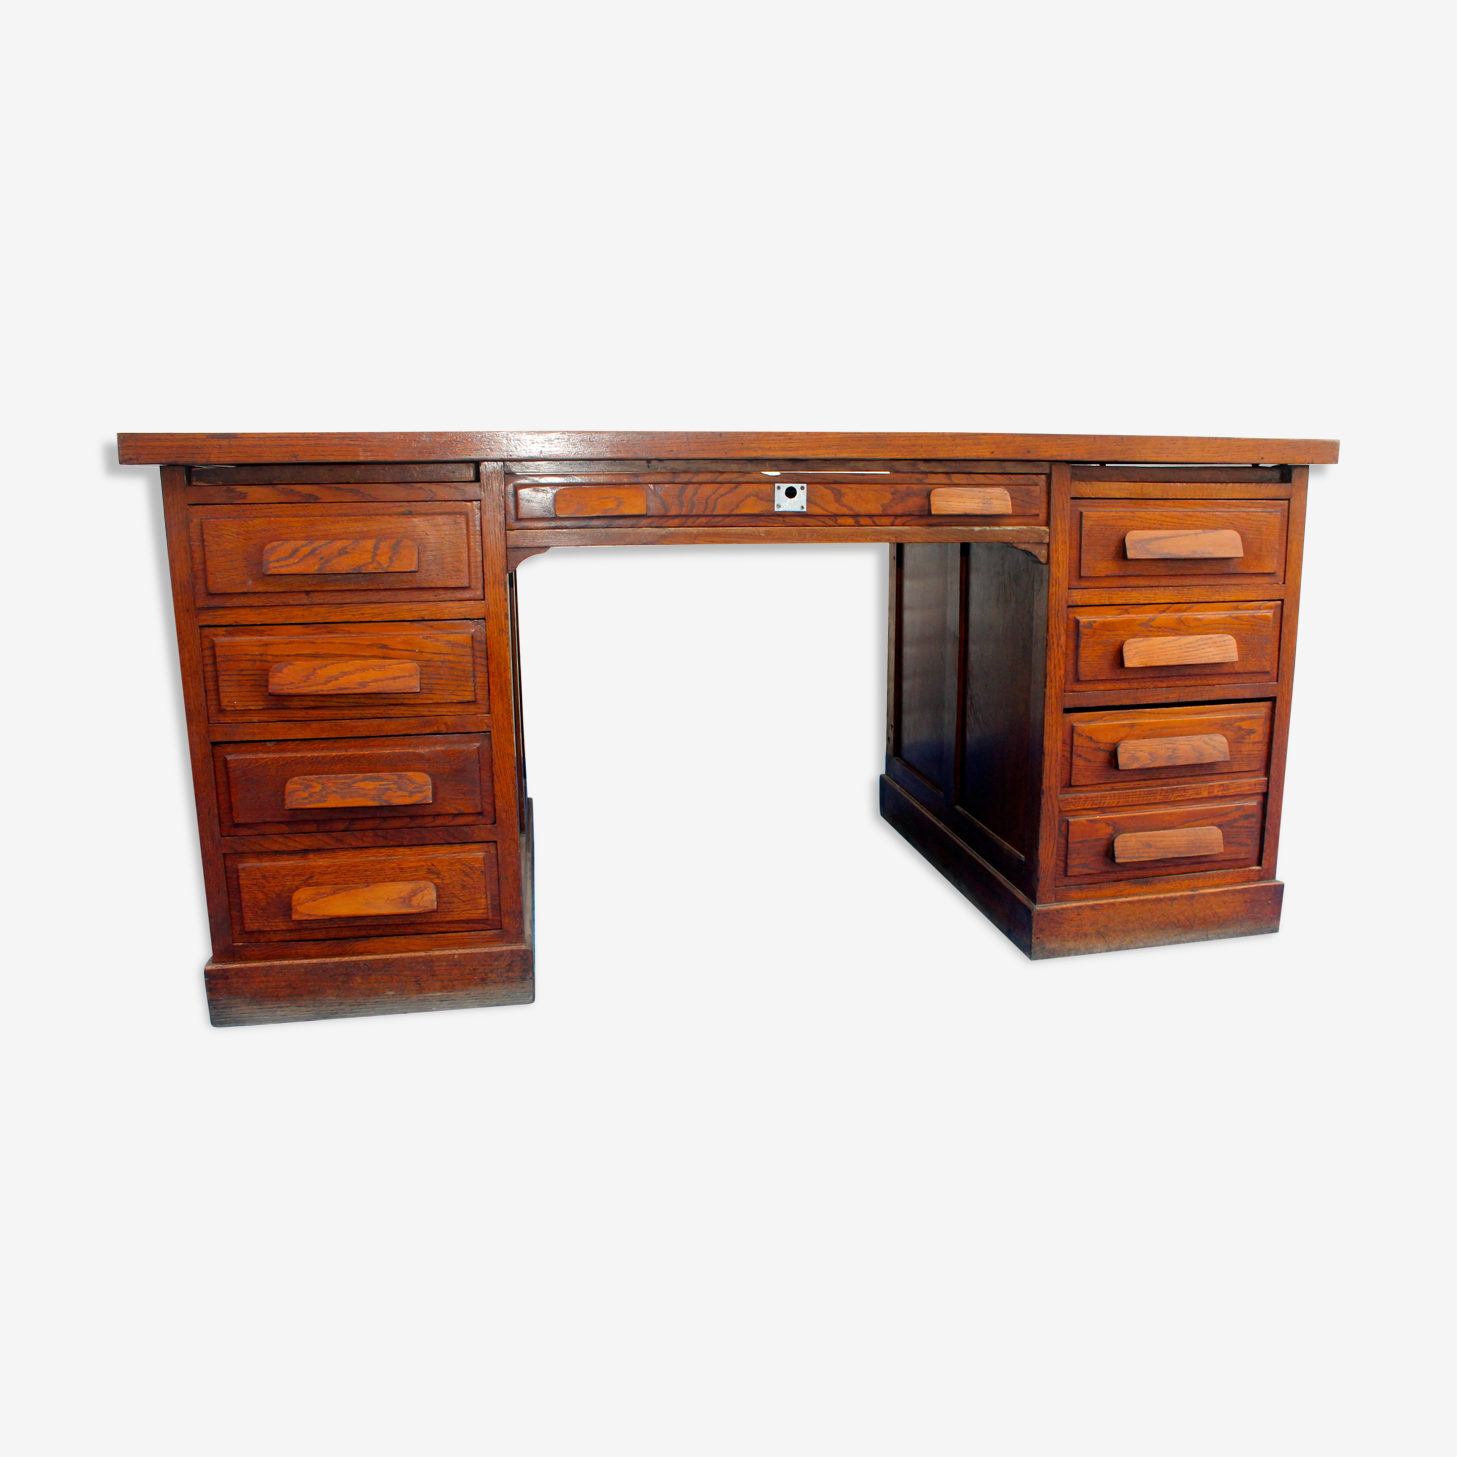 Former Minister coffered desk double